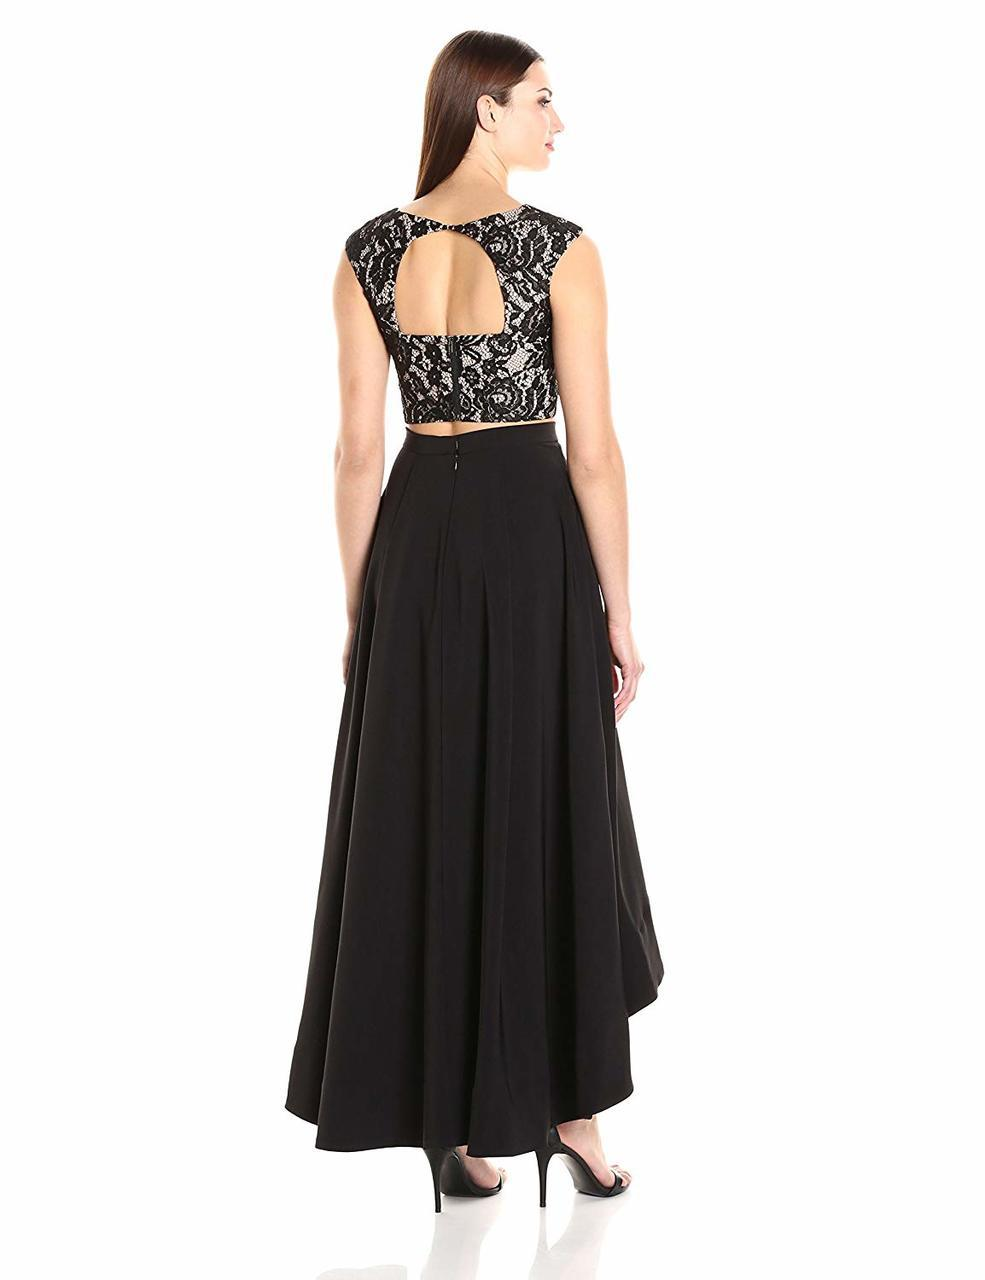 Aidan by Aidan Mattox - MN1E200681 Two Piece Lace High Low A-line Gown in Black and Neutral